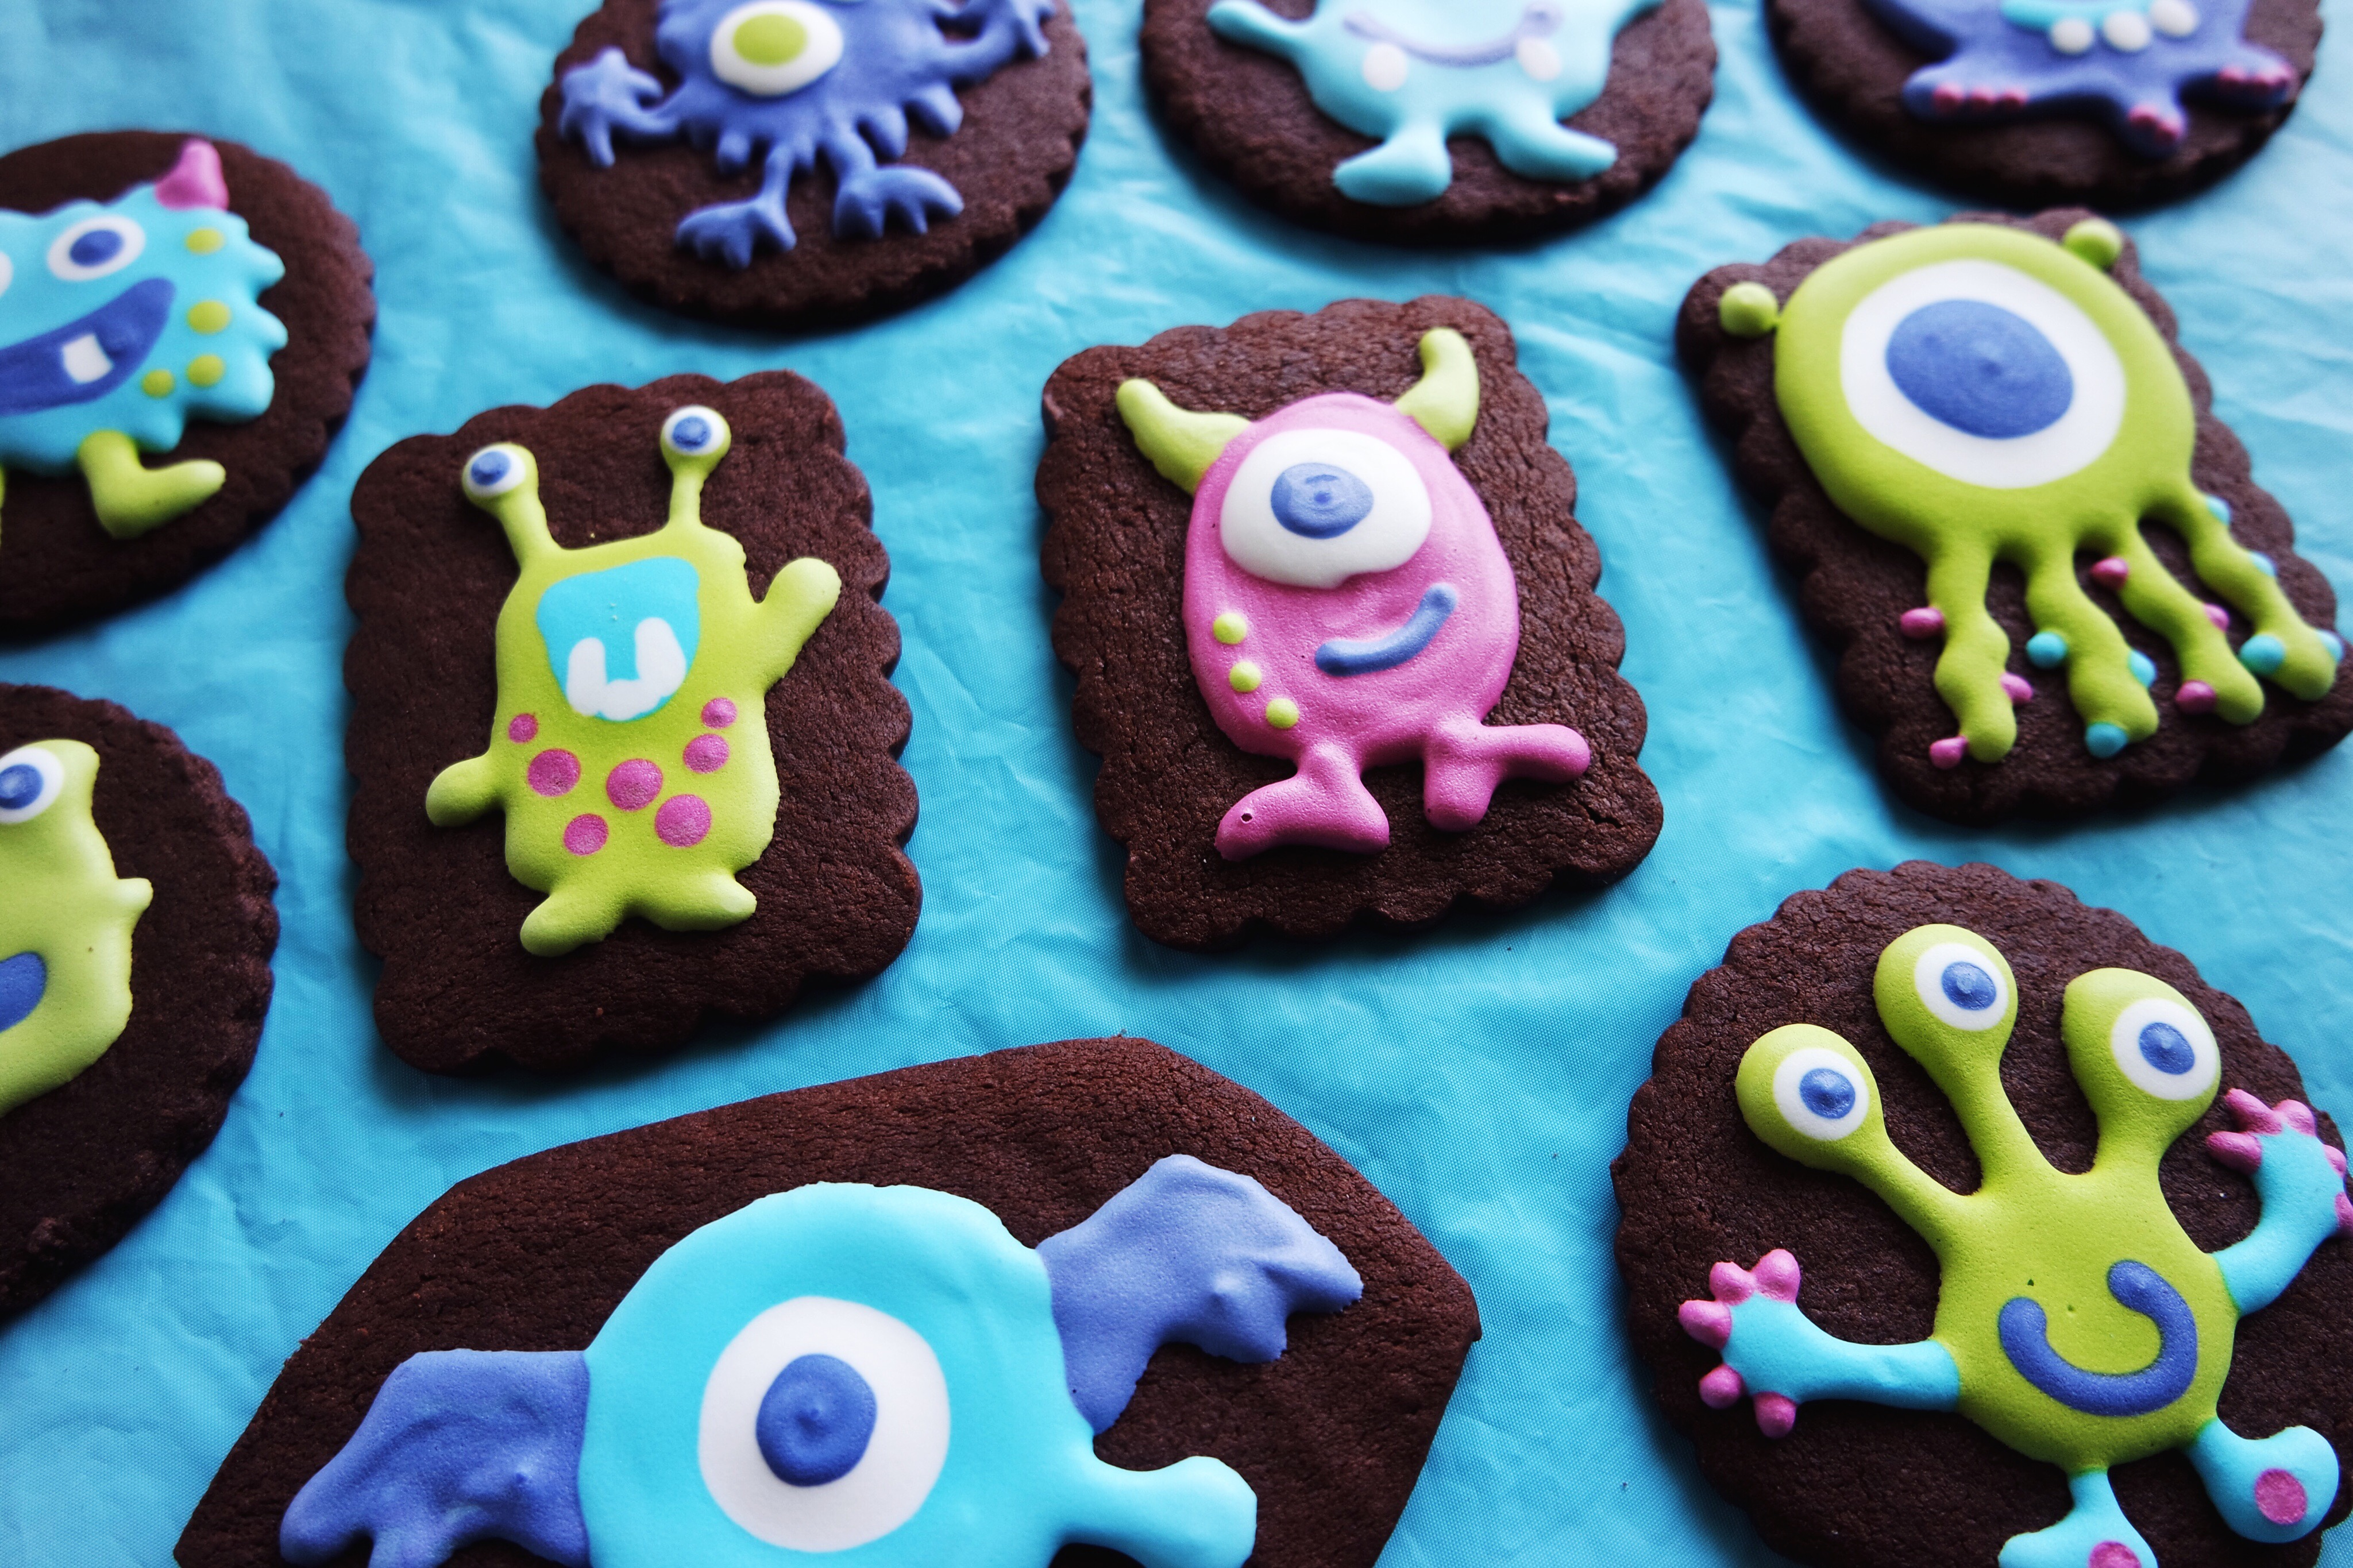 Little Monster Birthday Party Ideas - fun decoration and sweets ideas for baby & toddler monster parties